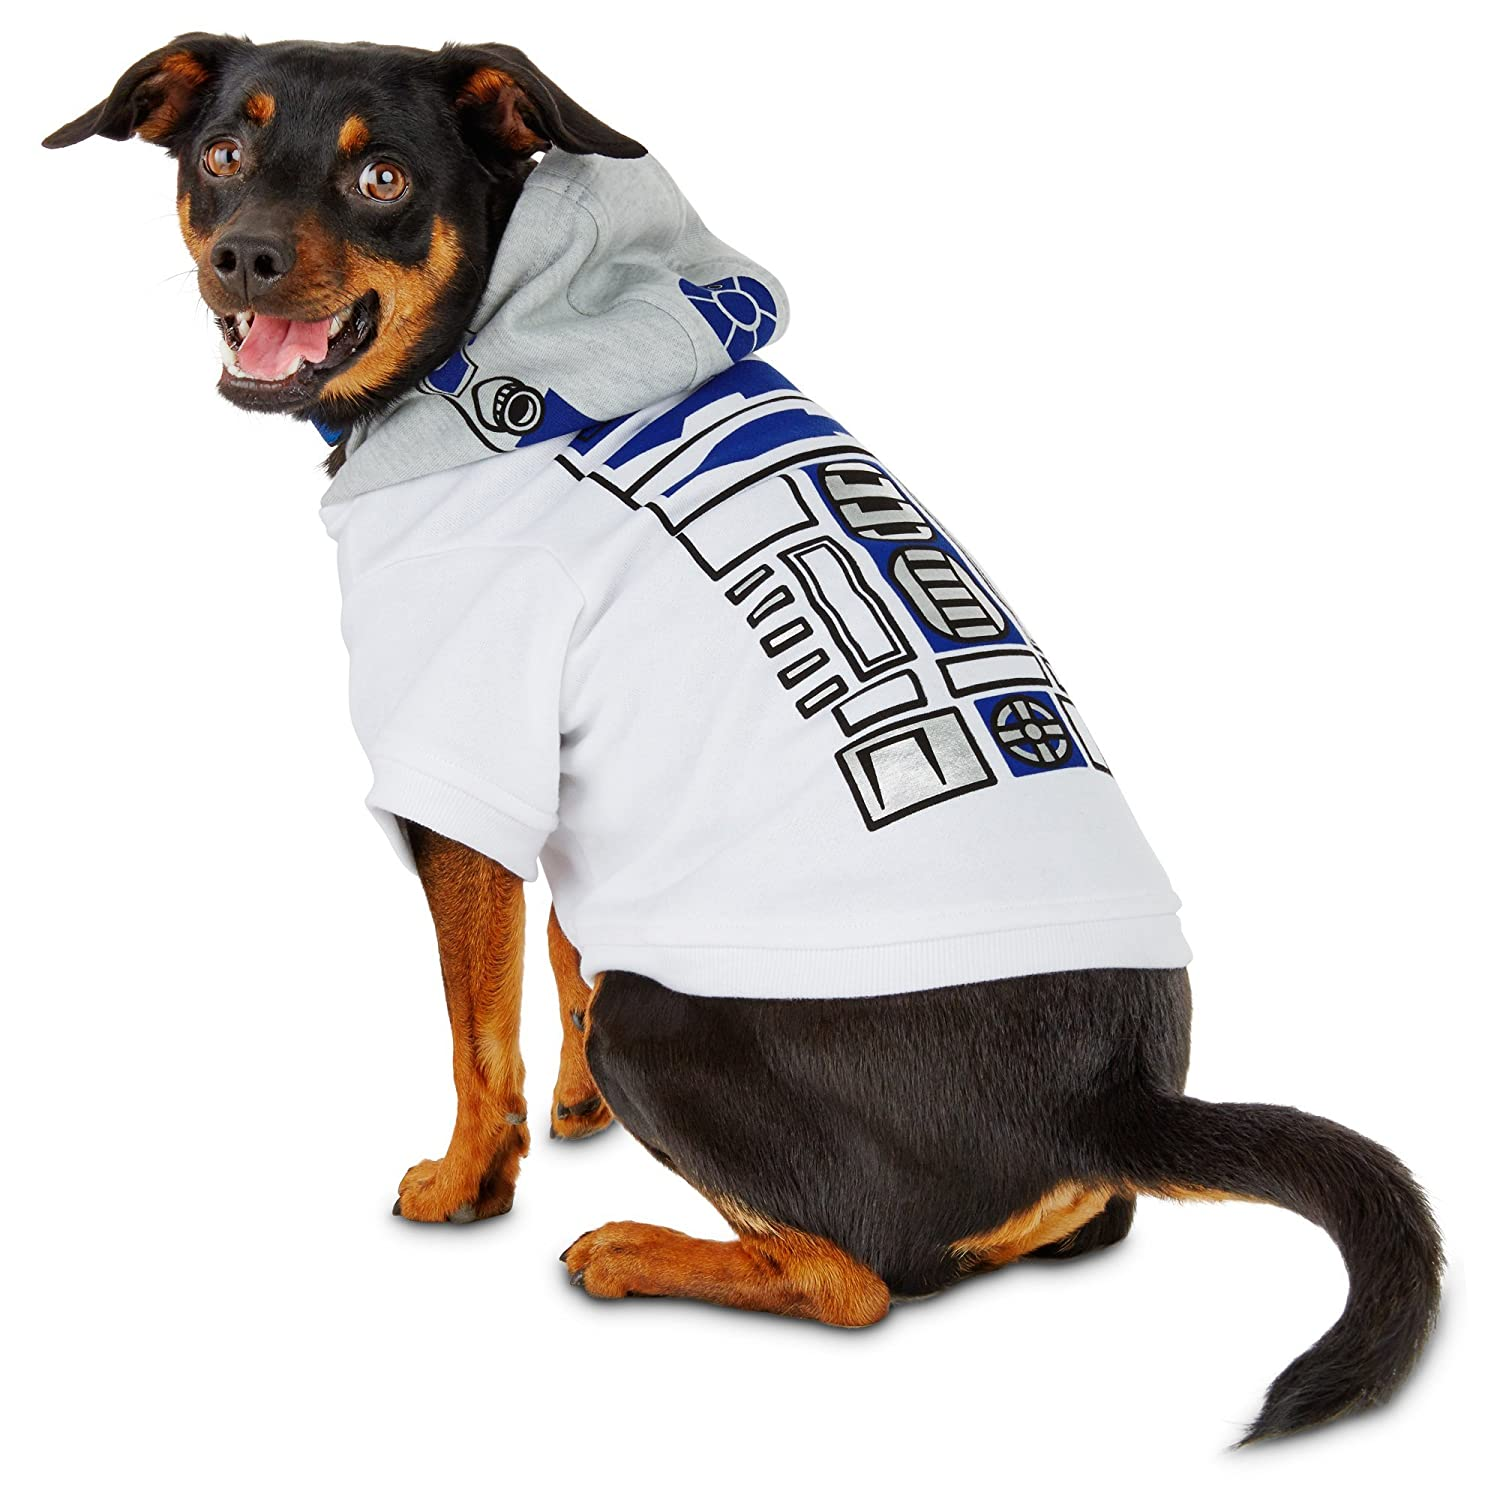 Medium STAR WARS R2-D2 Dog Hoodie, Medium